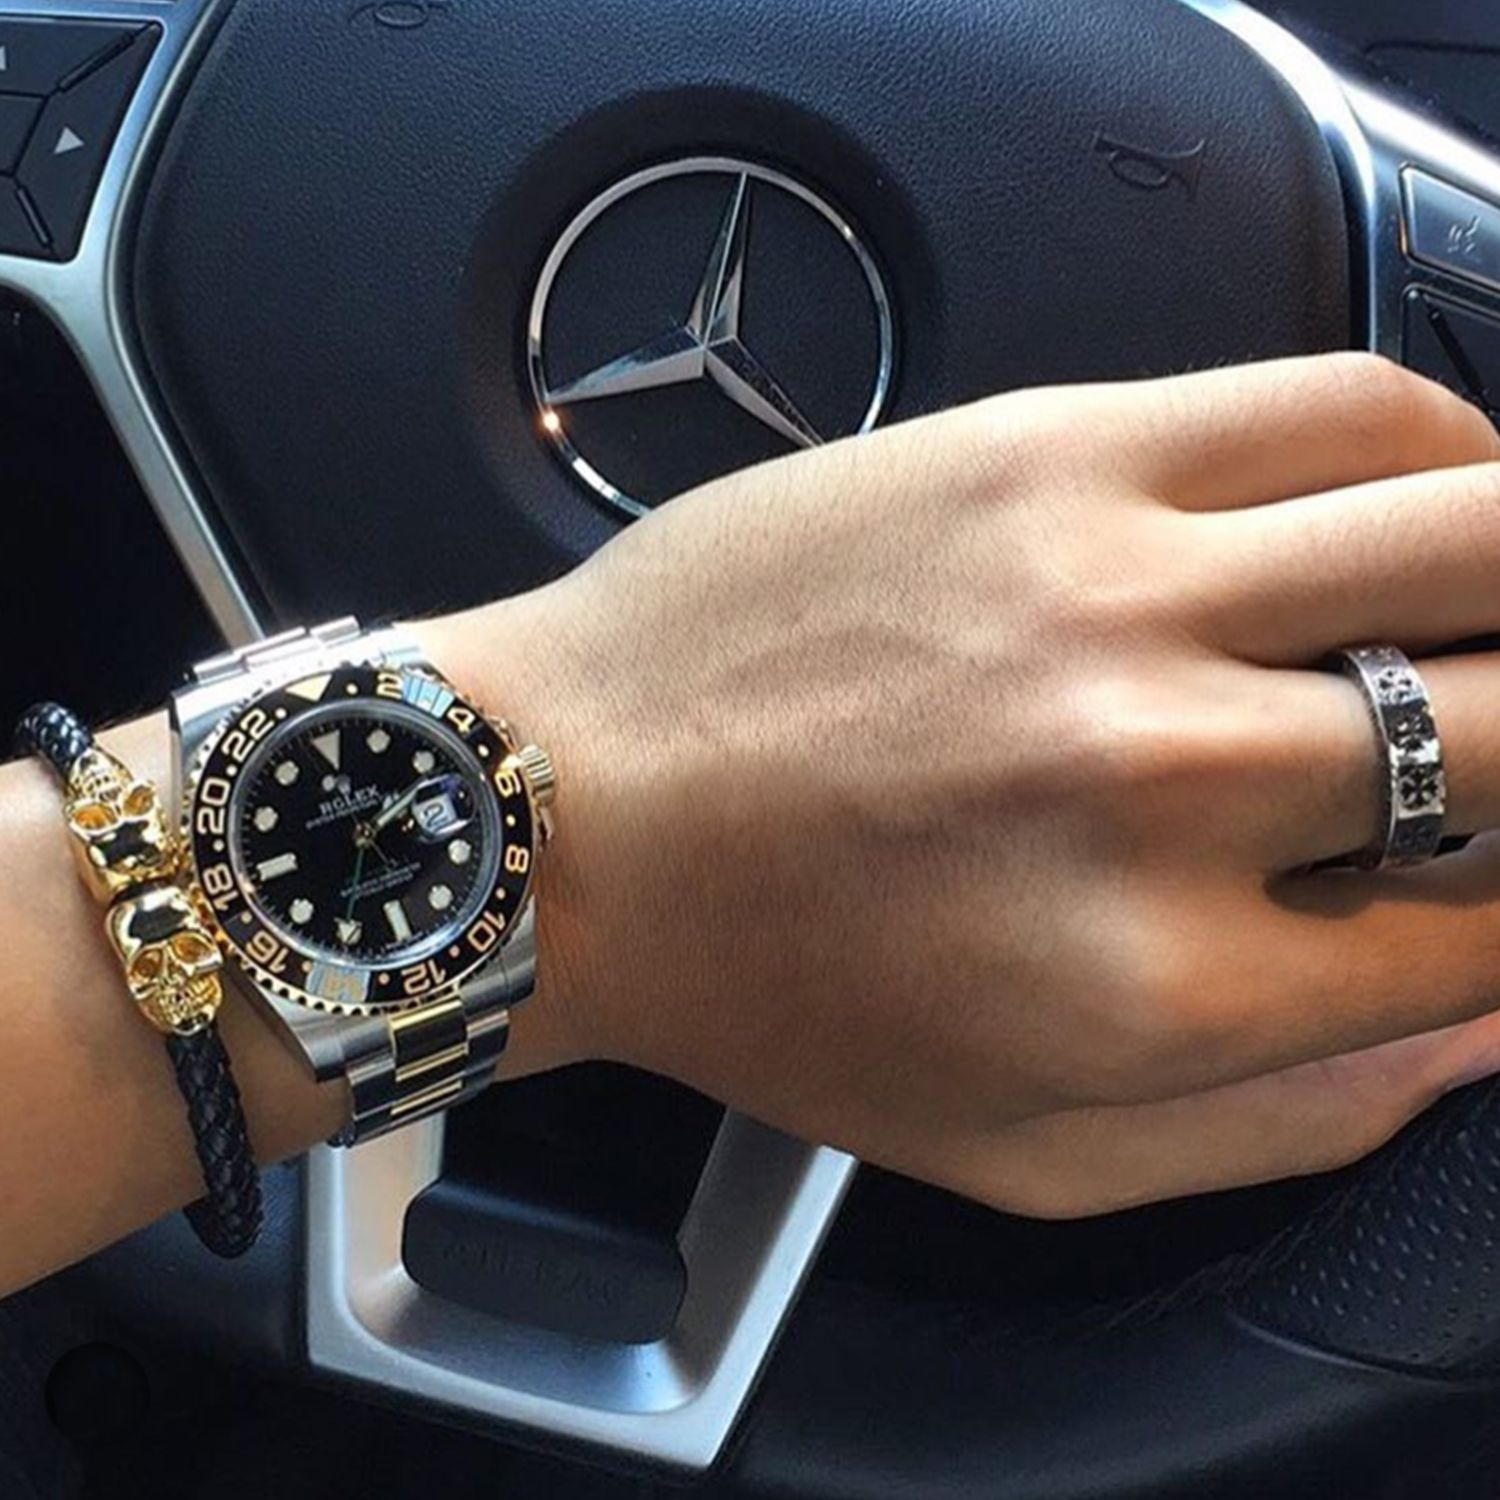 Fan Instagram Pic ! | While behind the wheel of his Mercedes @leo.tien shared a picture of his Northskull premium Black Nappa Leather & Gold Twin Skull Bracelet paired nicely with his Rolex GMT-Master II 40mm Watch. Strong Look! | Available now at Northskull.com | For a chance to get featured post a cool photo of your Northskull jewelry with the tag #Northskullfanpic on Instagram. #rolexwatches